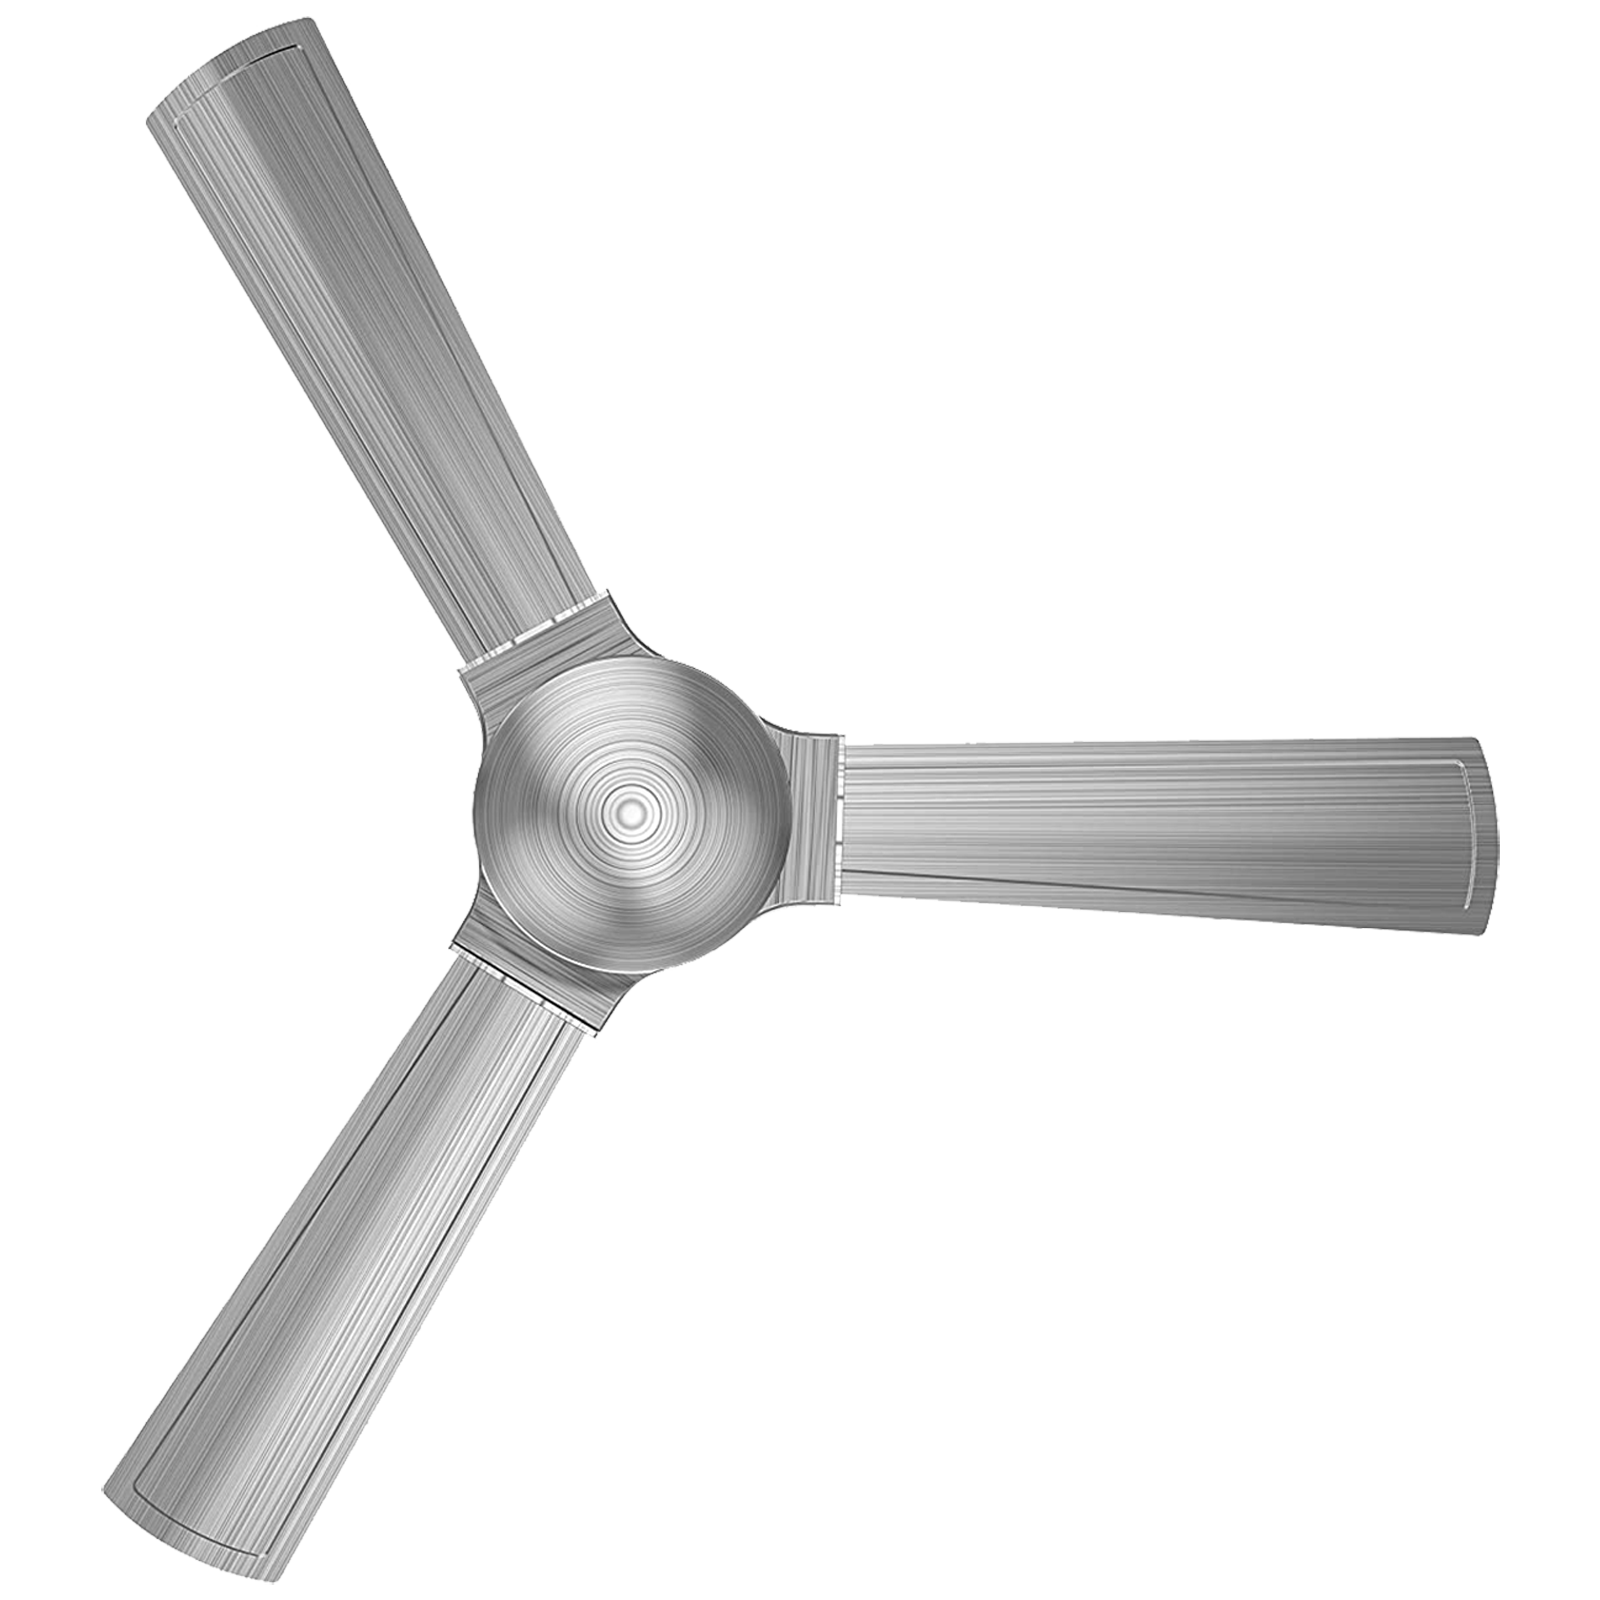 GM Lustre 120 cm Sweep 3 Blade Ceiling Fan (Extra Copper, CFP480013BSEP, Silver)_1